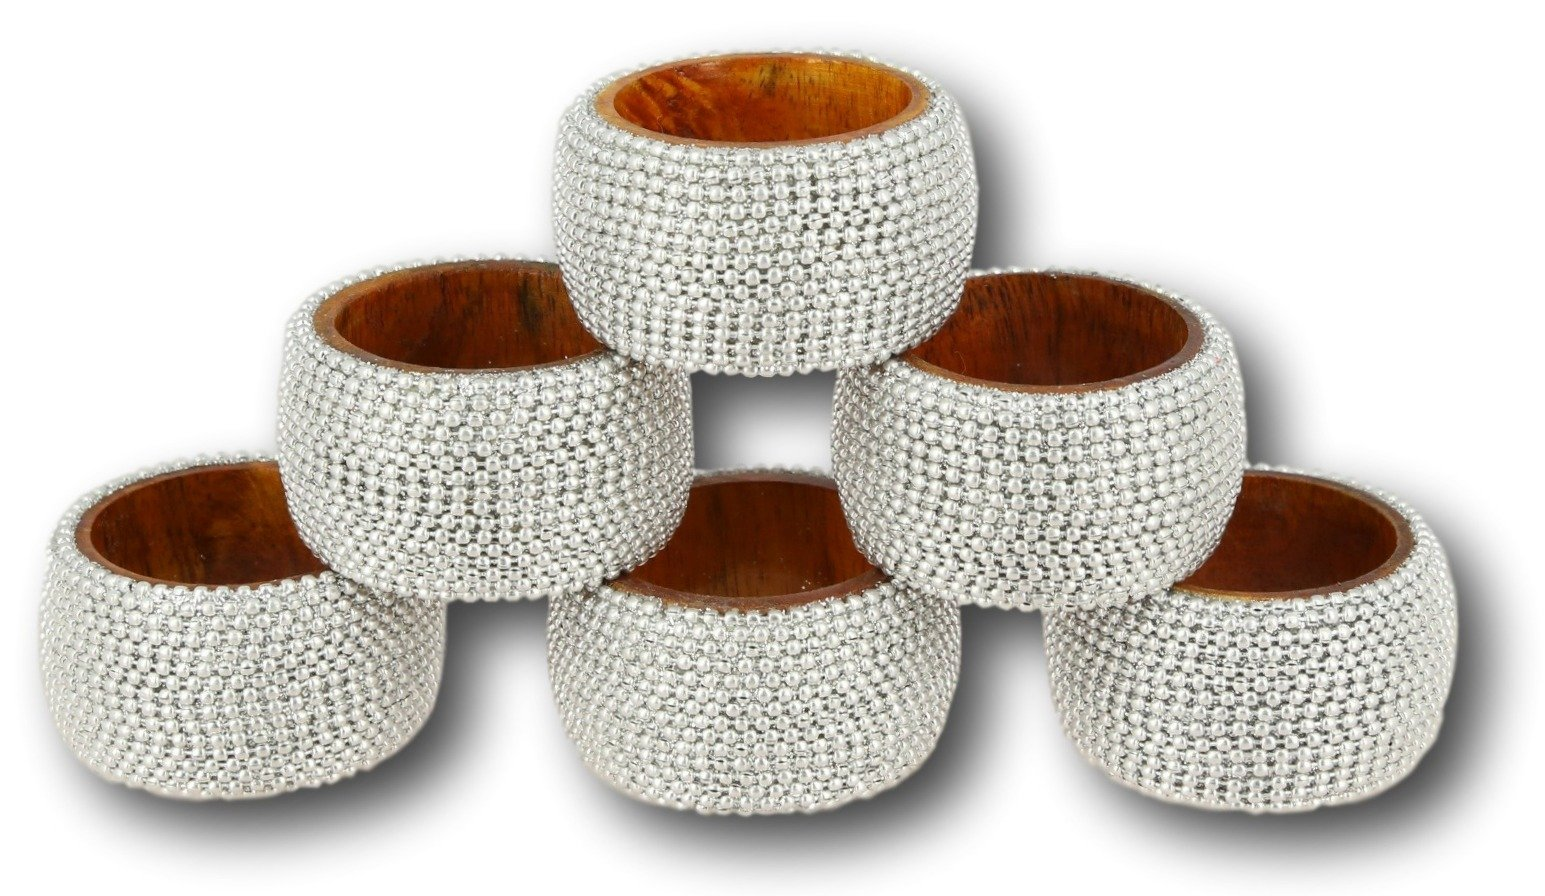 ShalinIndia Handmade Indian Silver Aluminum Ball Chain Wooden Napkin Ring Set - Set of 6 Napkin Rings - Industrial Chic Look - Made in India